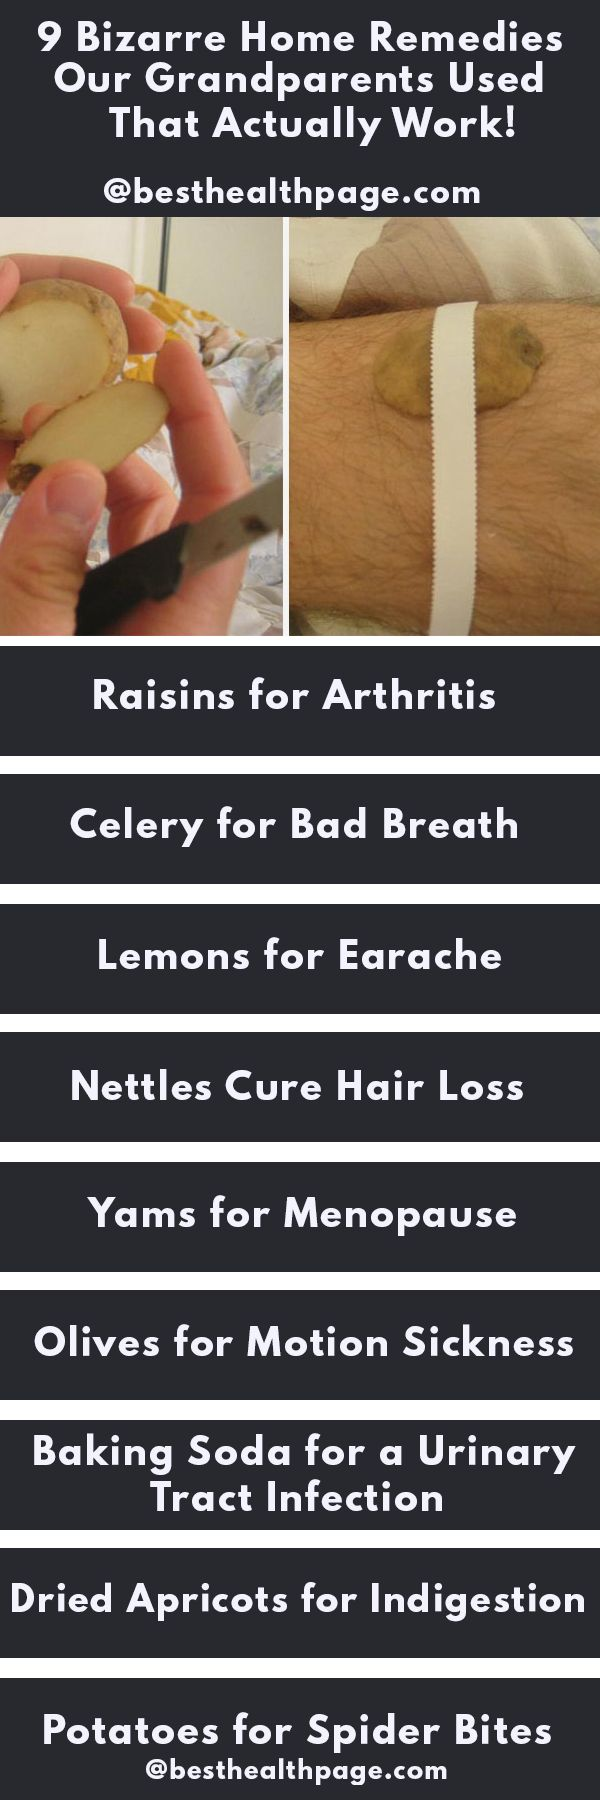 1.Raisins for Arthritis YES, you got that right! You can use raisins to ease the symptoms of arthritis! It's very simple – you just have to soak golden raisins overnight in a couple of spoonful of gin. The vitamins from the raisins mixed with the anti-inflammatory effects of the juniper berries used to make …